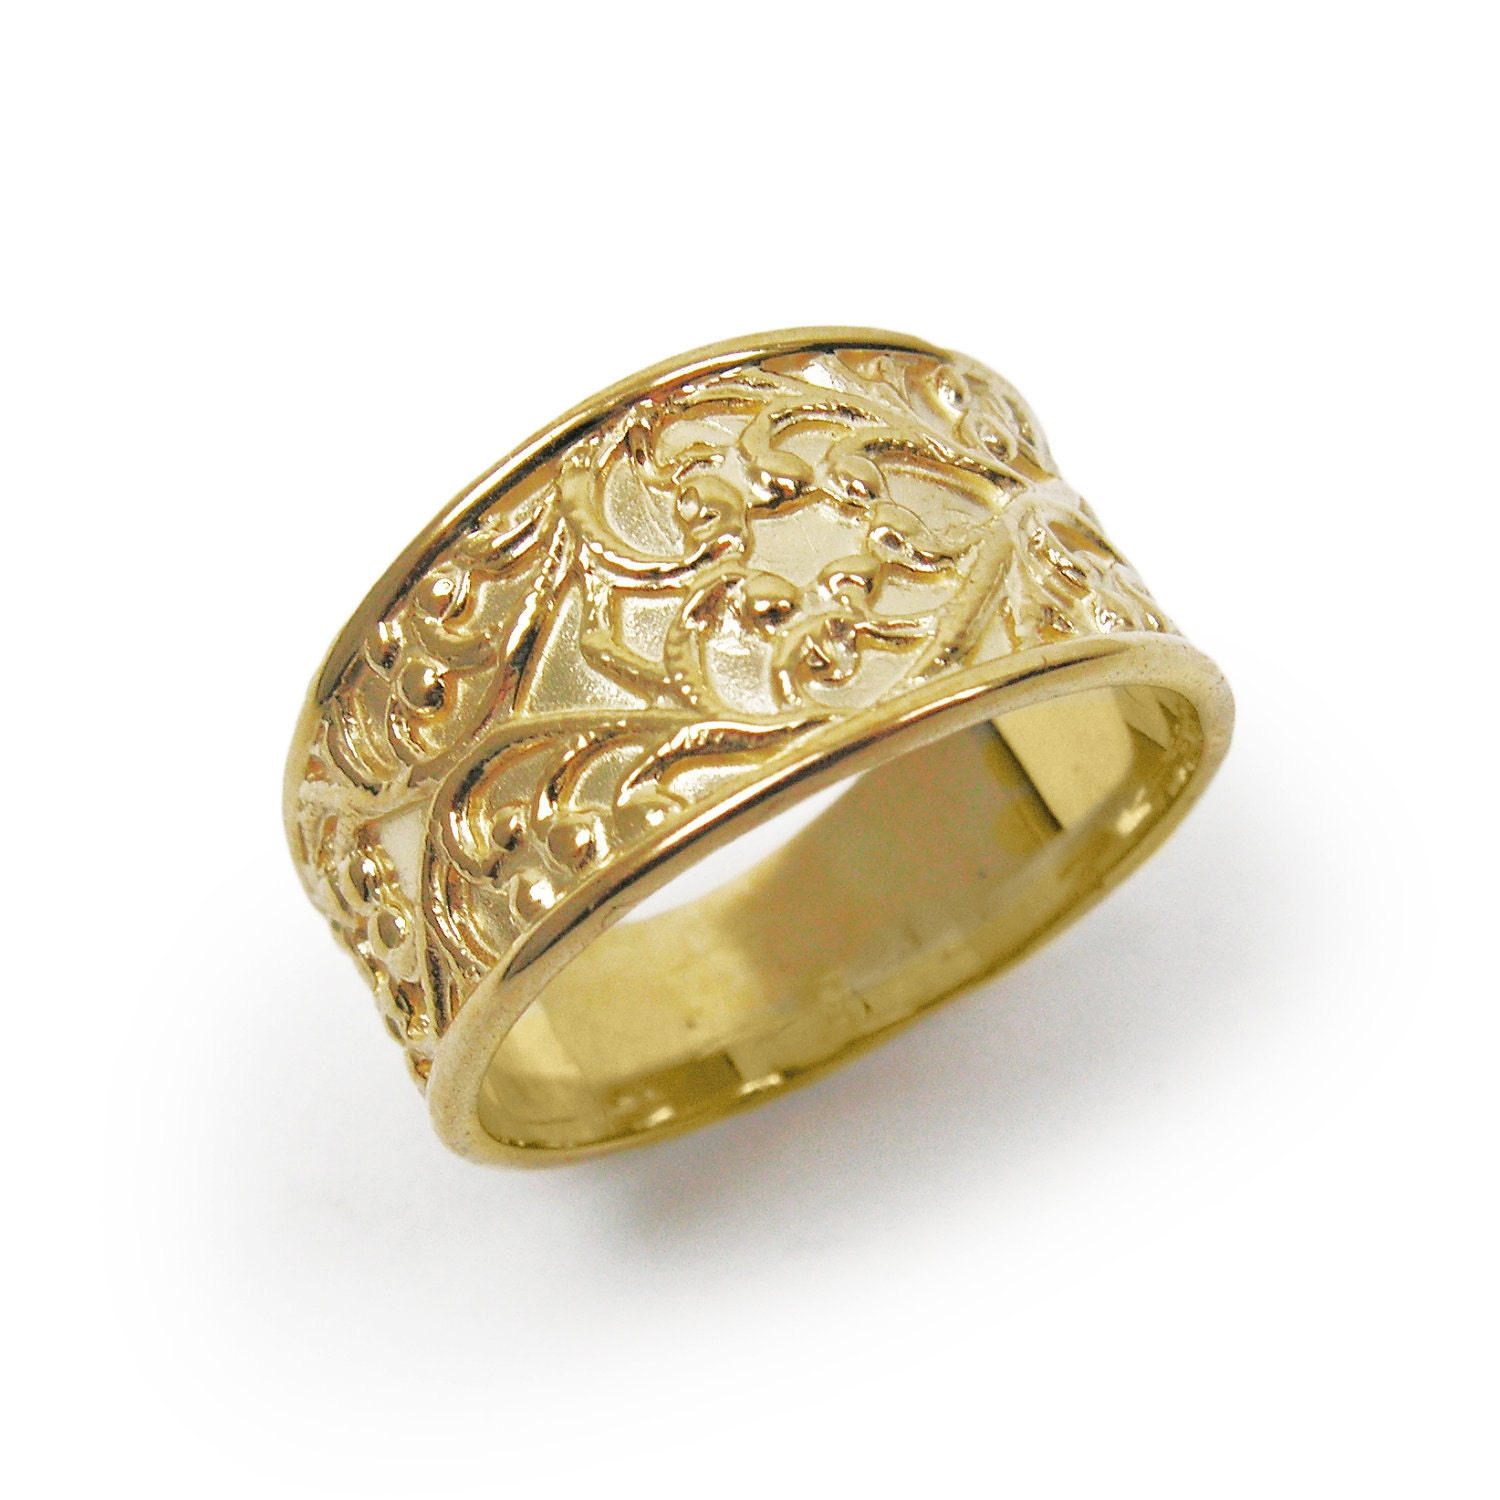 Unique Wedding Band Art Nouveau Wedding Ring 14k Yellow Gold